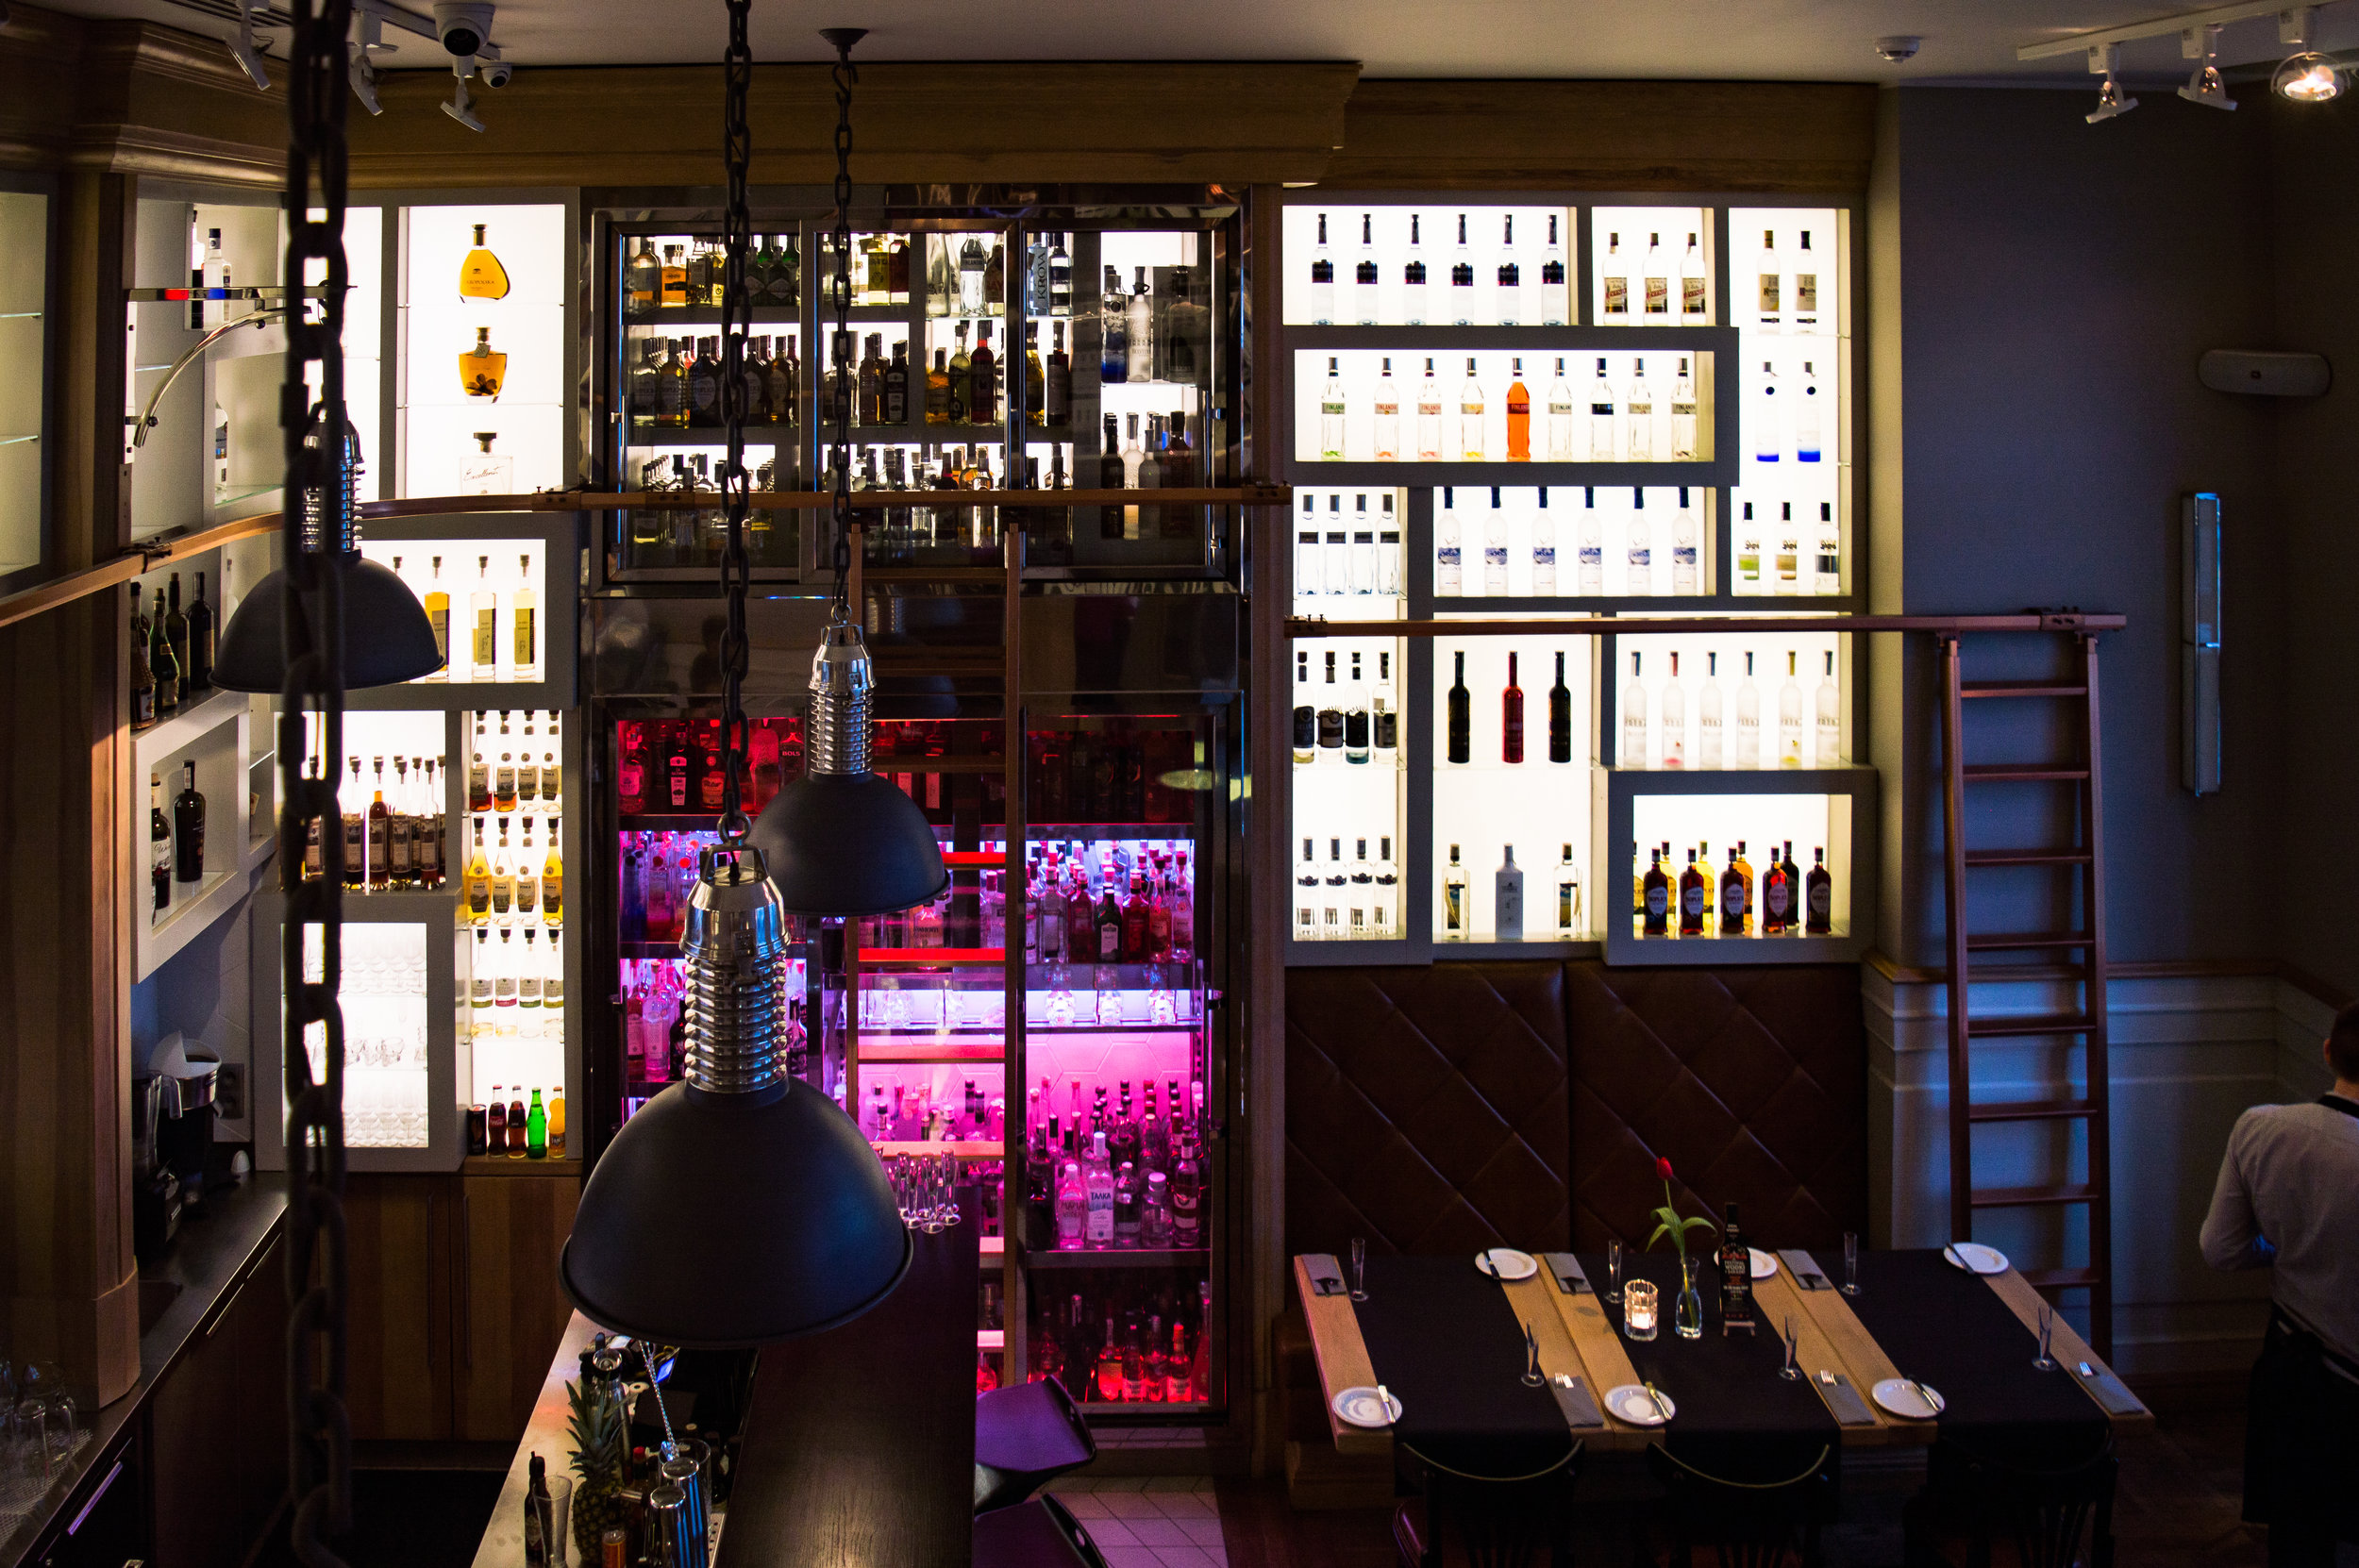 Elixir- the bar displaying over 500 types of vodka.